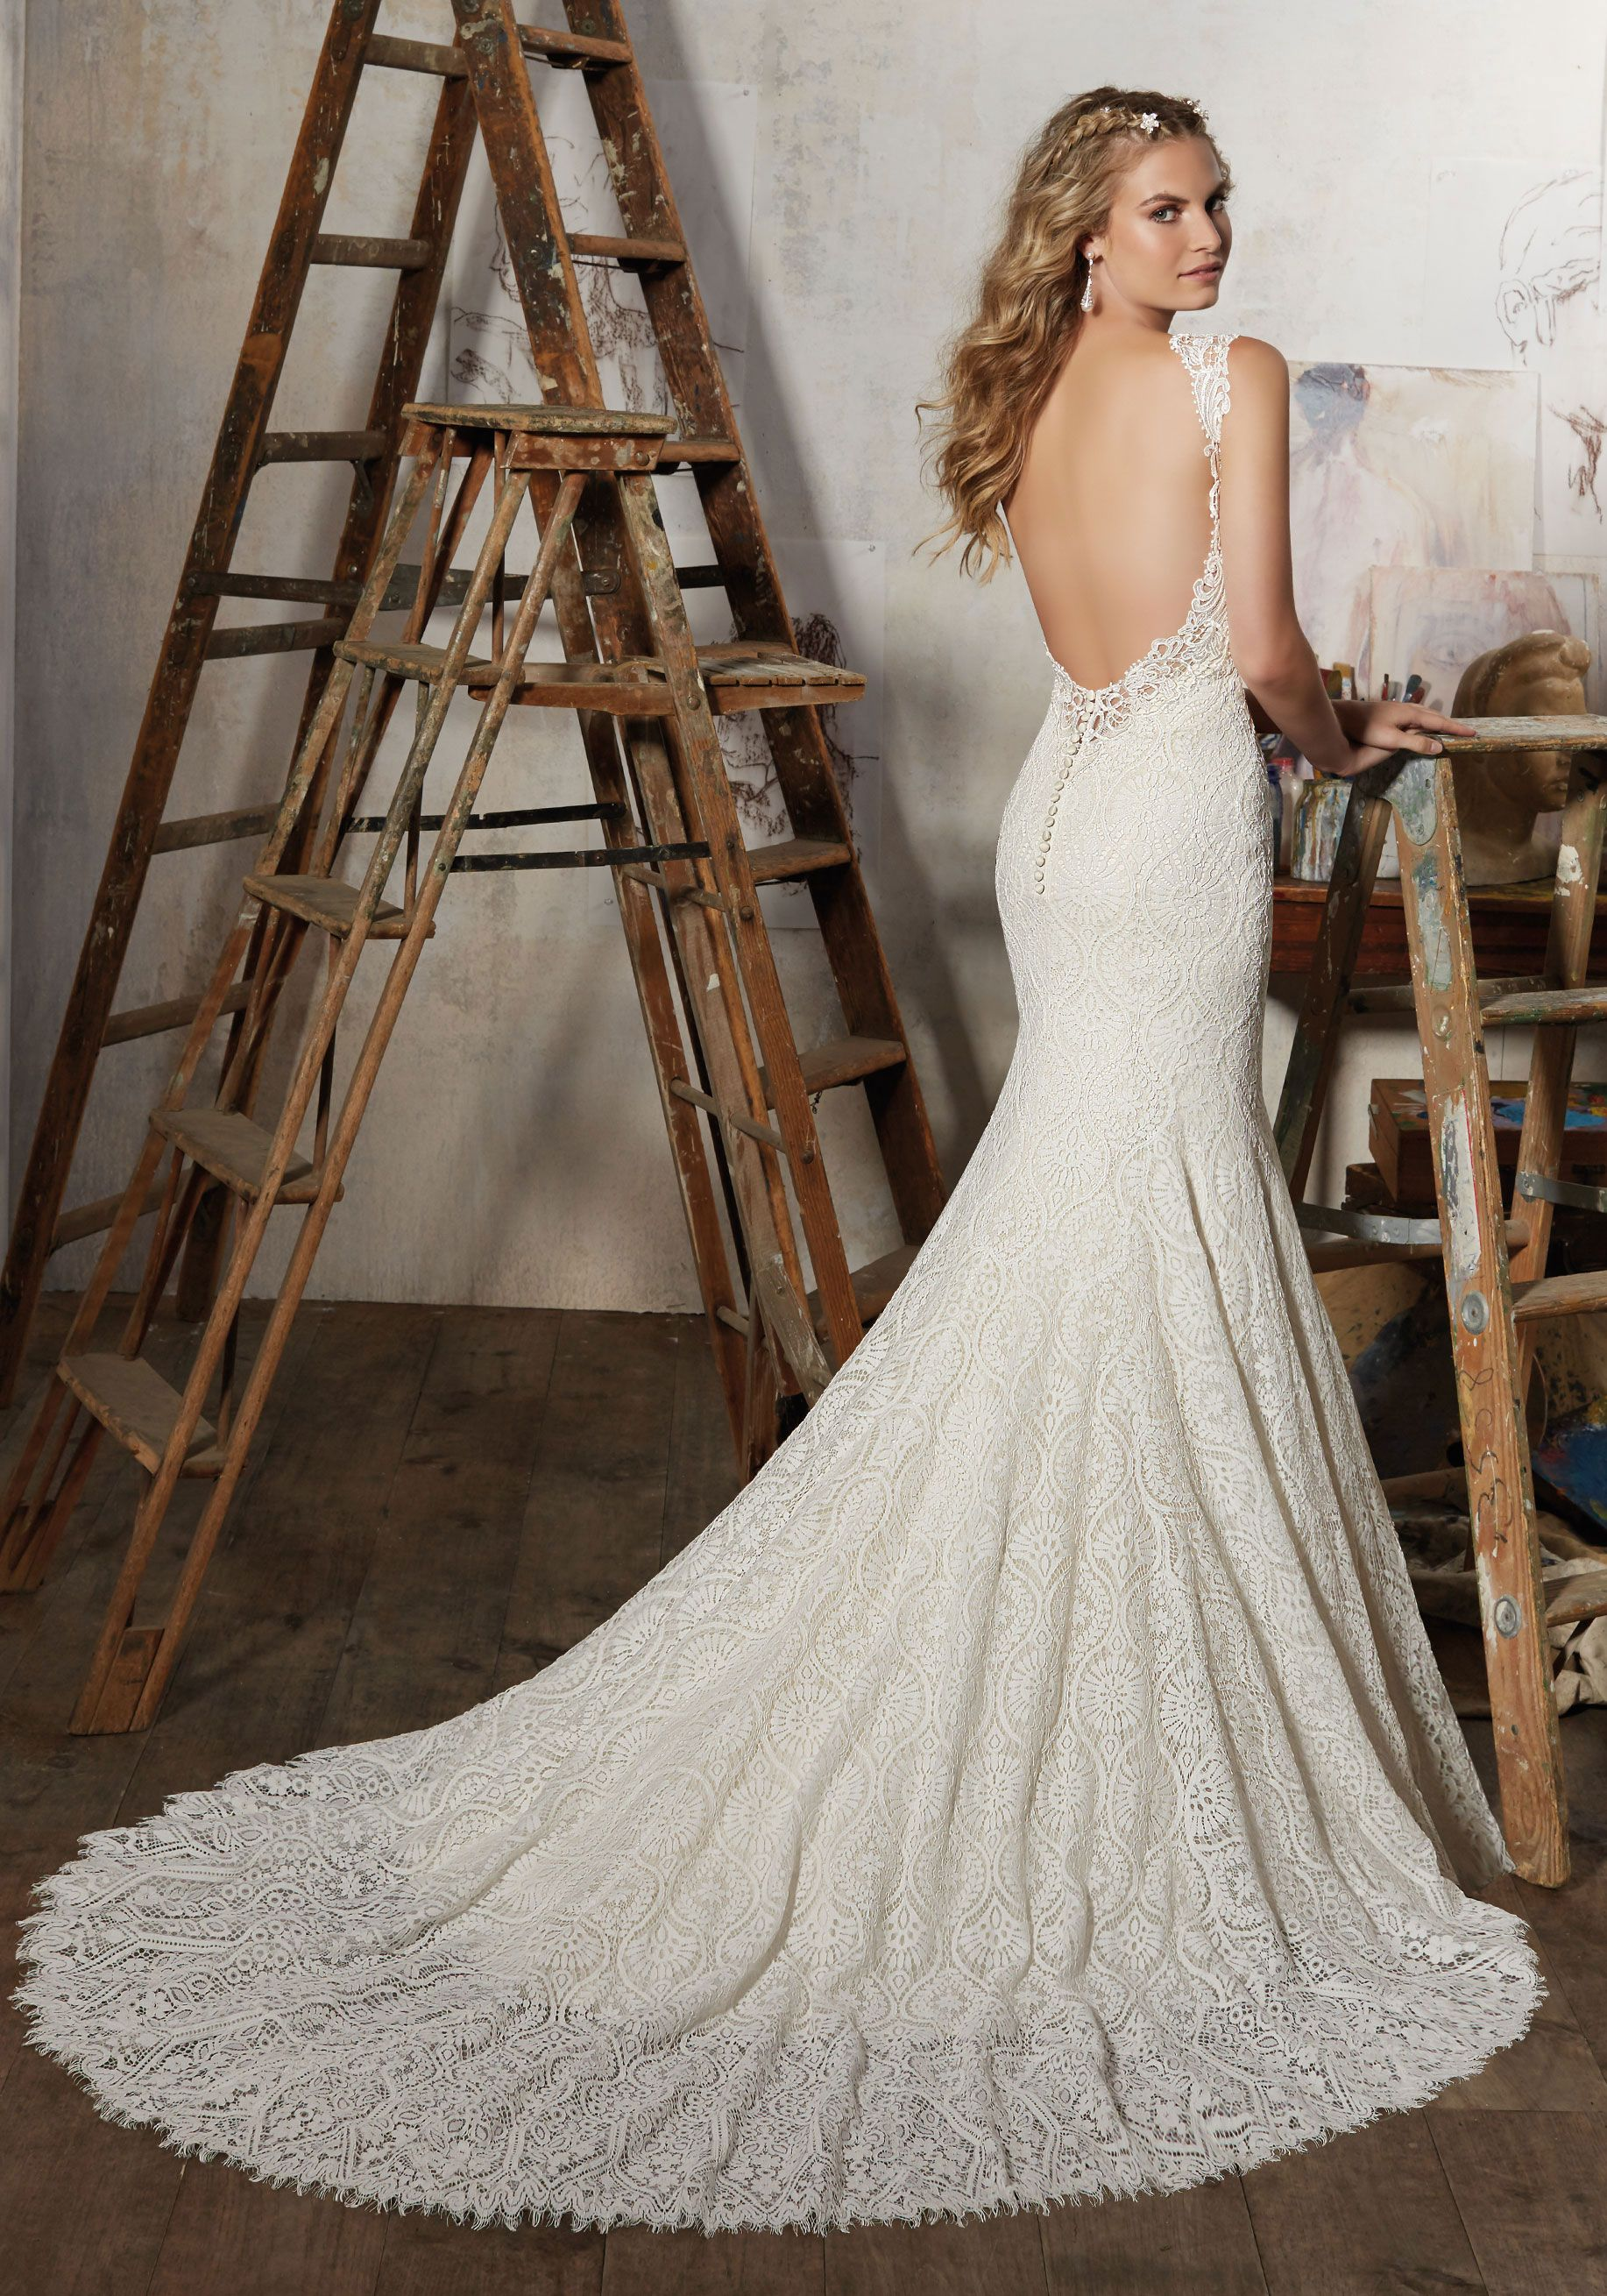 Best Stunning Wedding Dress Made of Allover Vintage Lace with Venice Lace Trim Open Back and